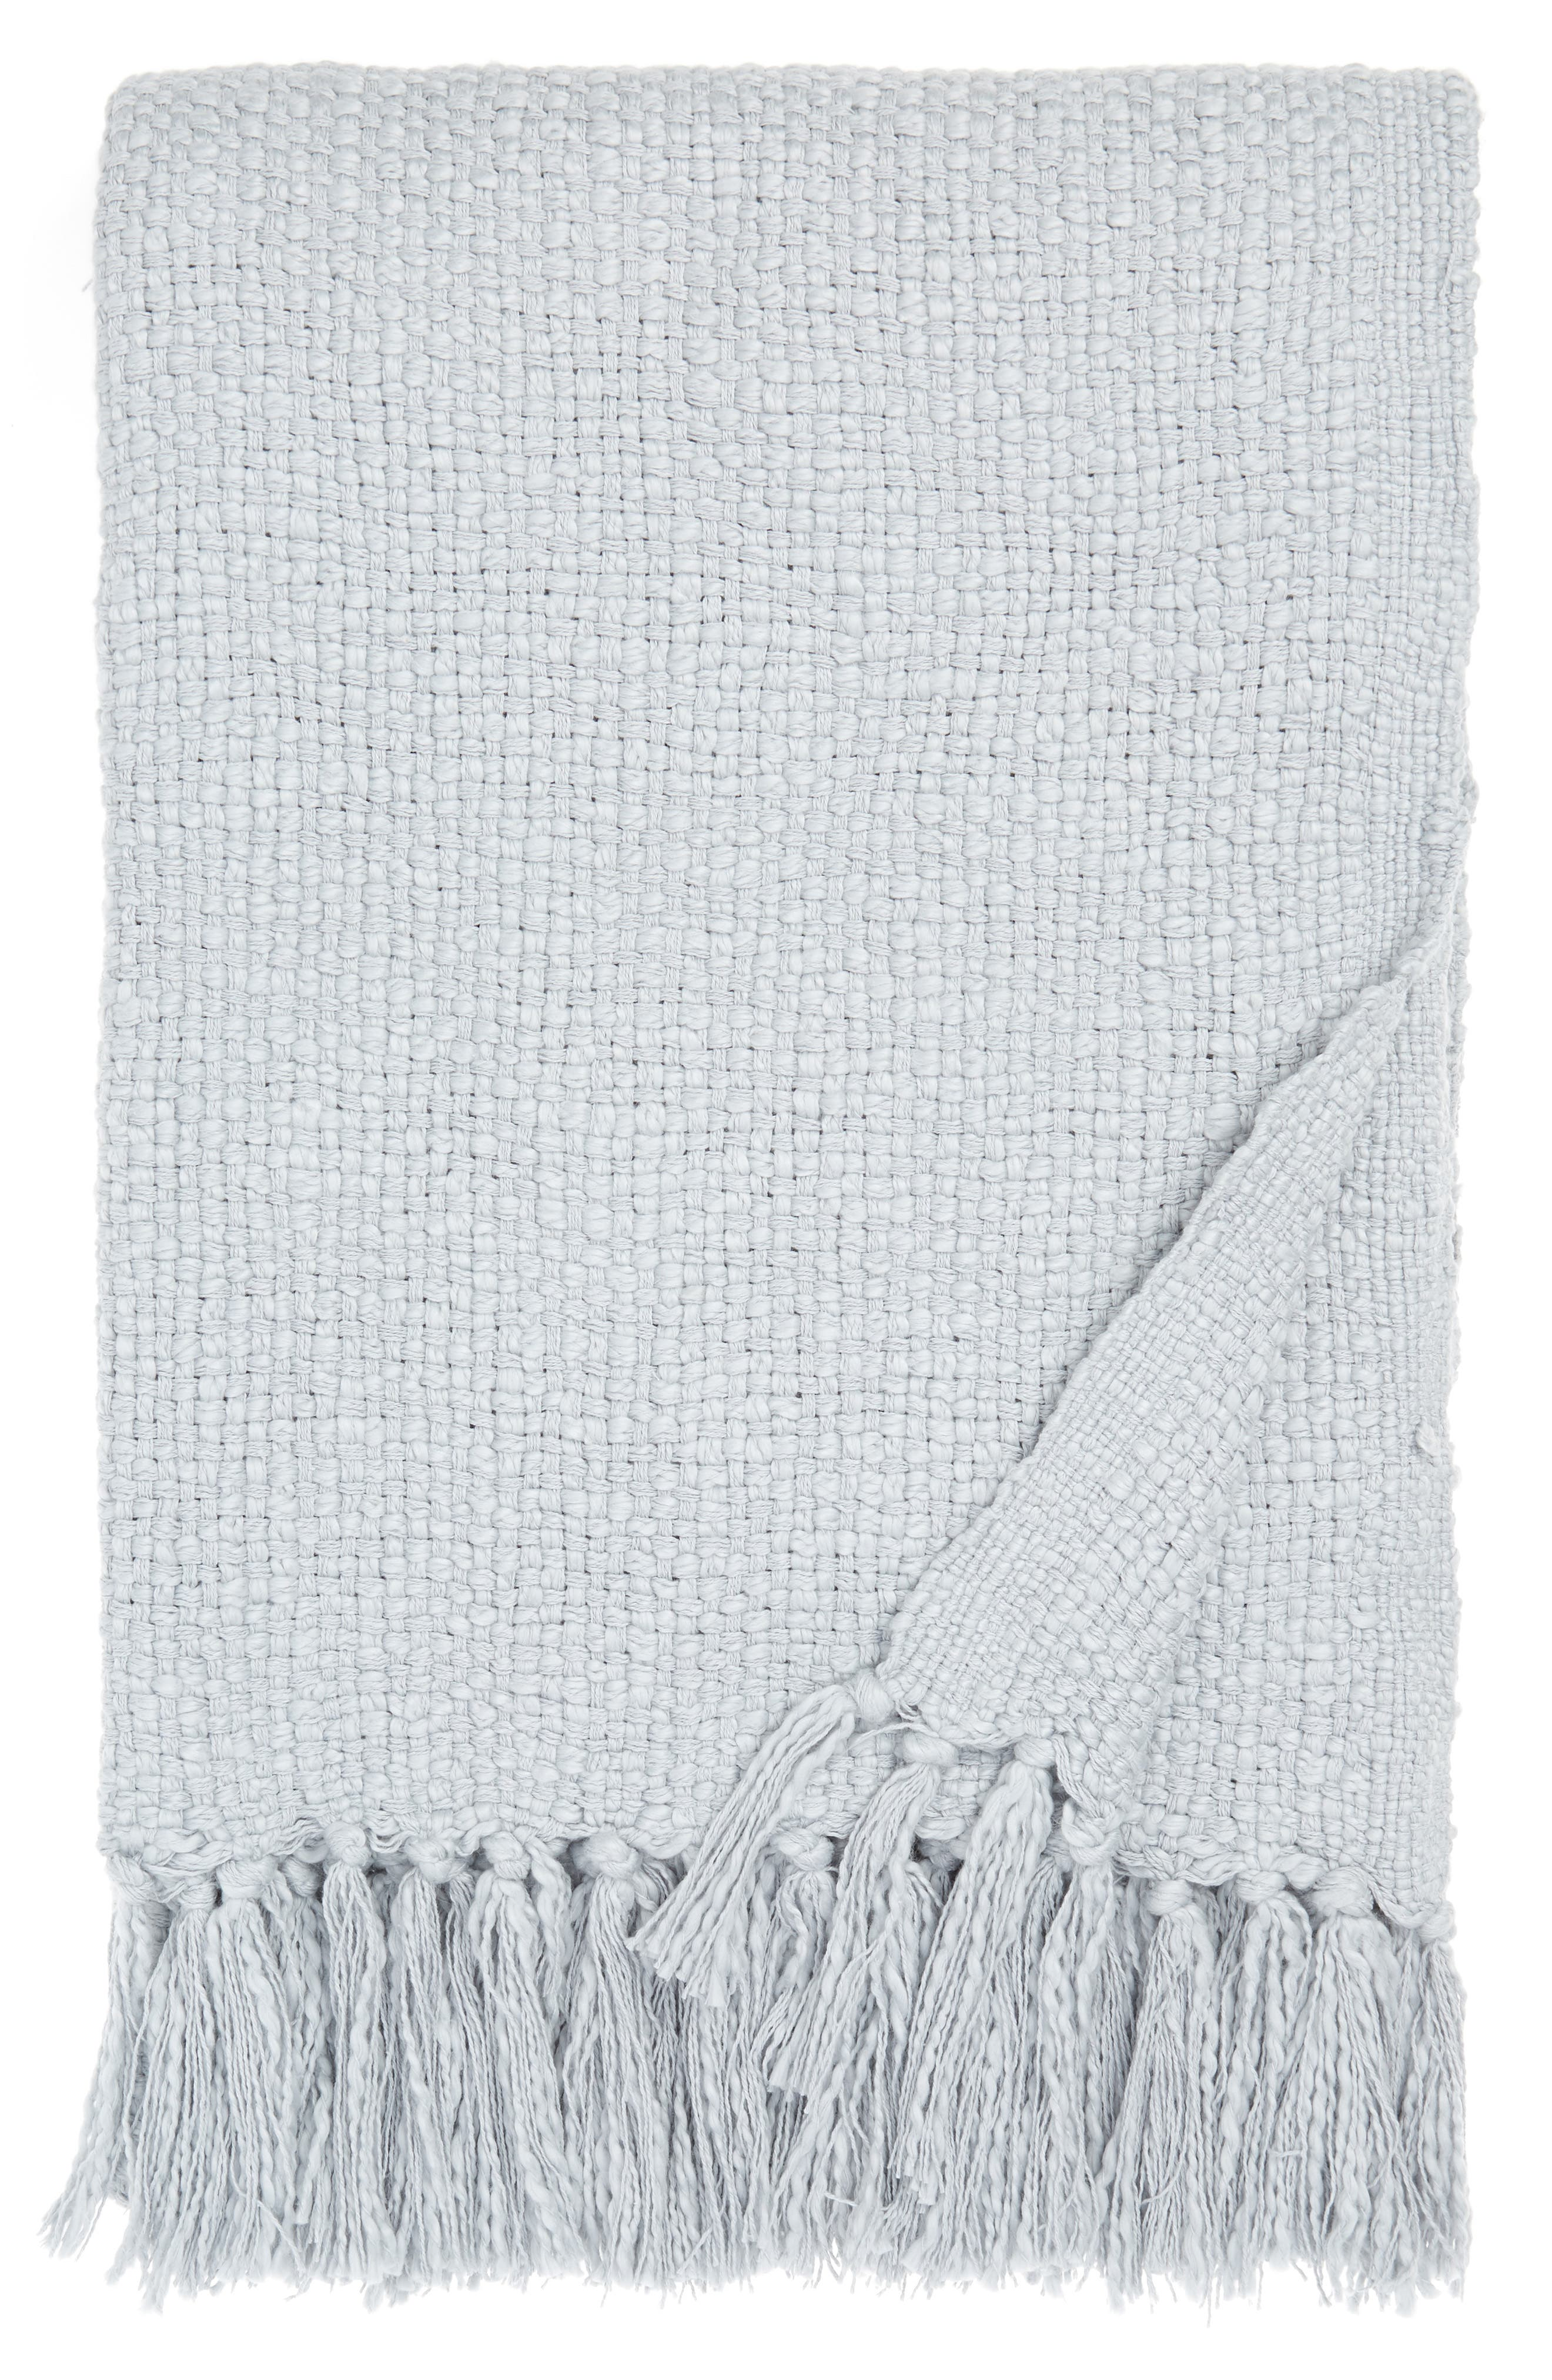 Get ready for good reads and long naps under this blissfully cozy throw woven from thick cotton yarns and edged with lush fringe. Style Name: Nordstrom Woven Cotton Throw Blanket. Style Number: 5929994. Available in stores.